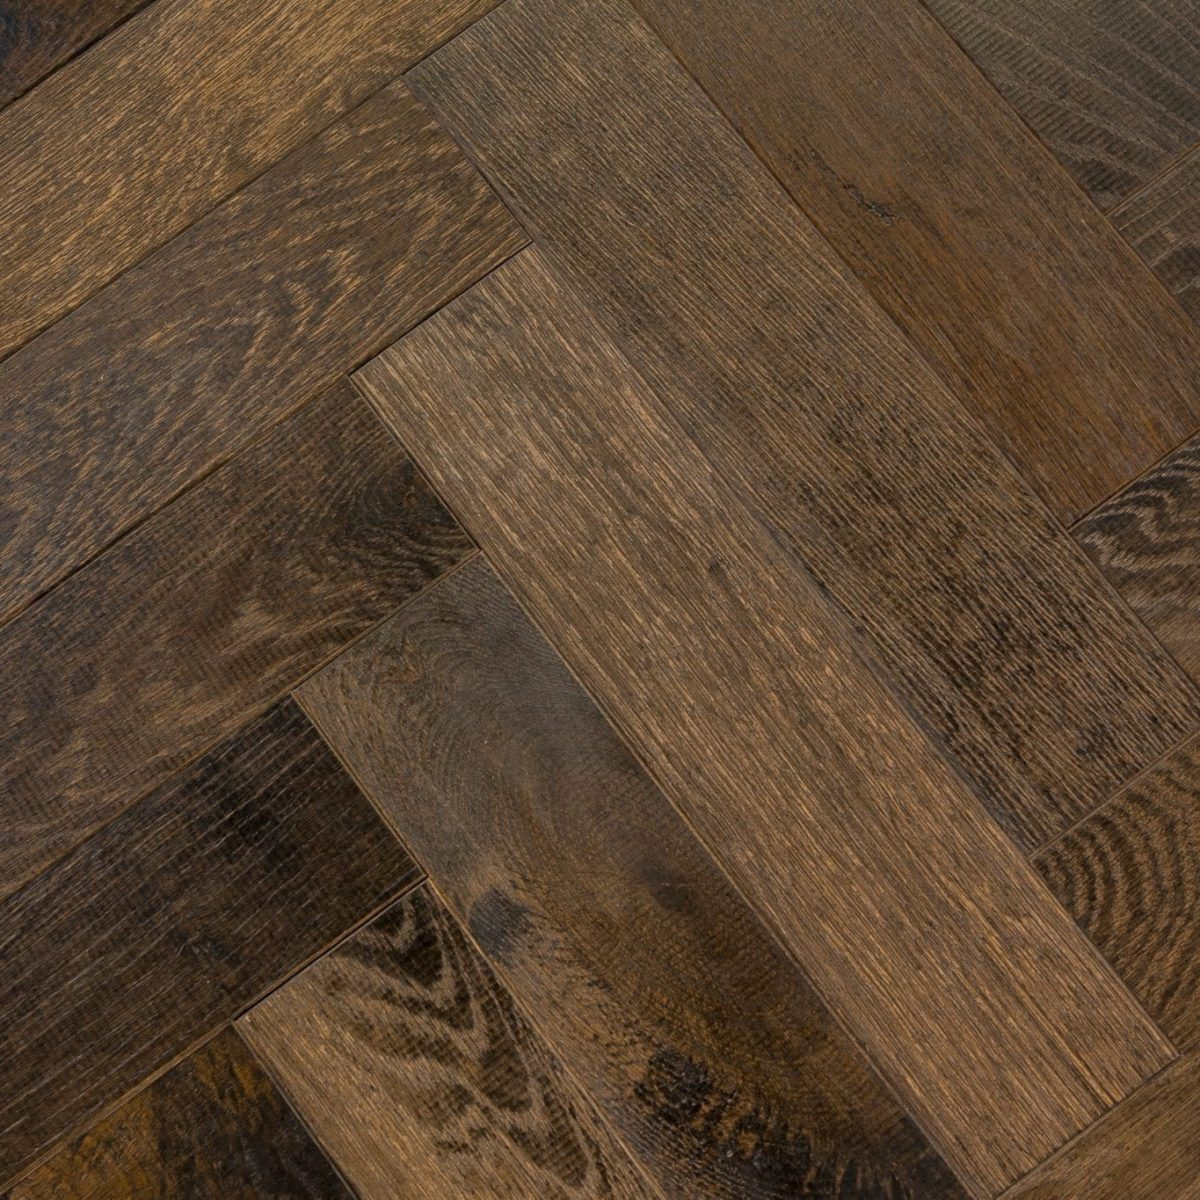 Dolcevita 15/4 x 90mm Tannery Oak Herringbone Engineered